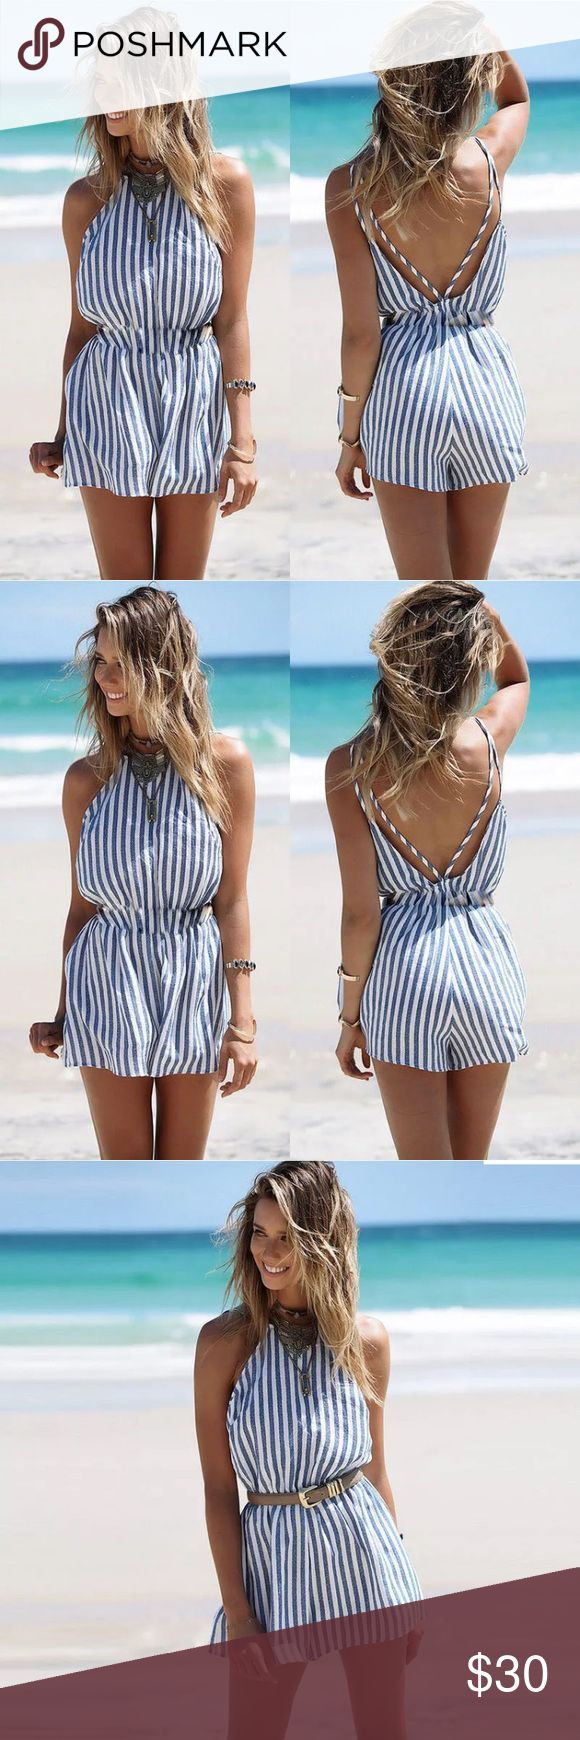 🌸striped blue and white romper🌸 Beautiful sky blue and white short summer romper.  🌸Make an offer 🌸Bundle for an additional 10% off 🌸Don't hesitate to ask any questions  🌸Available in S and M Dresses